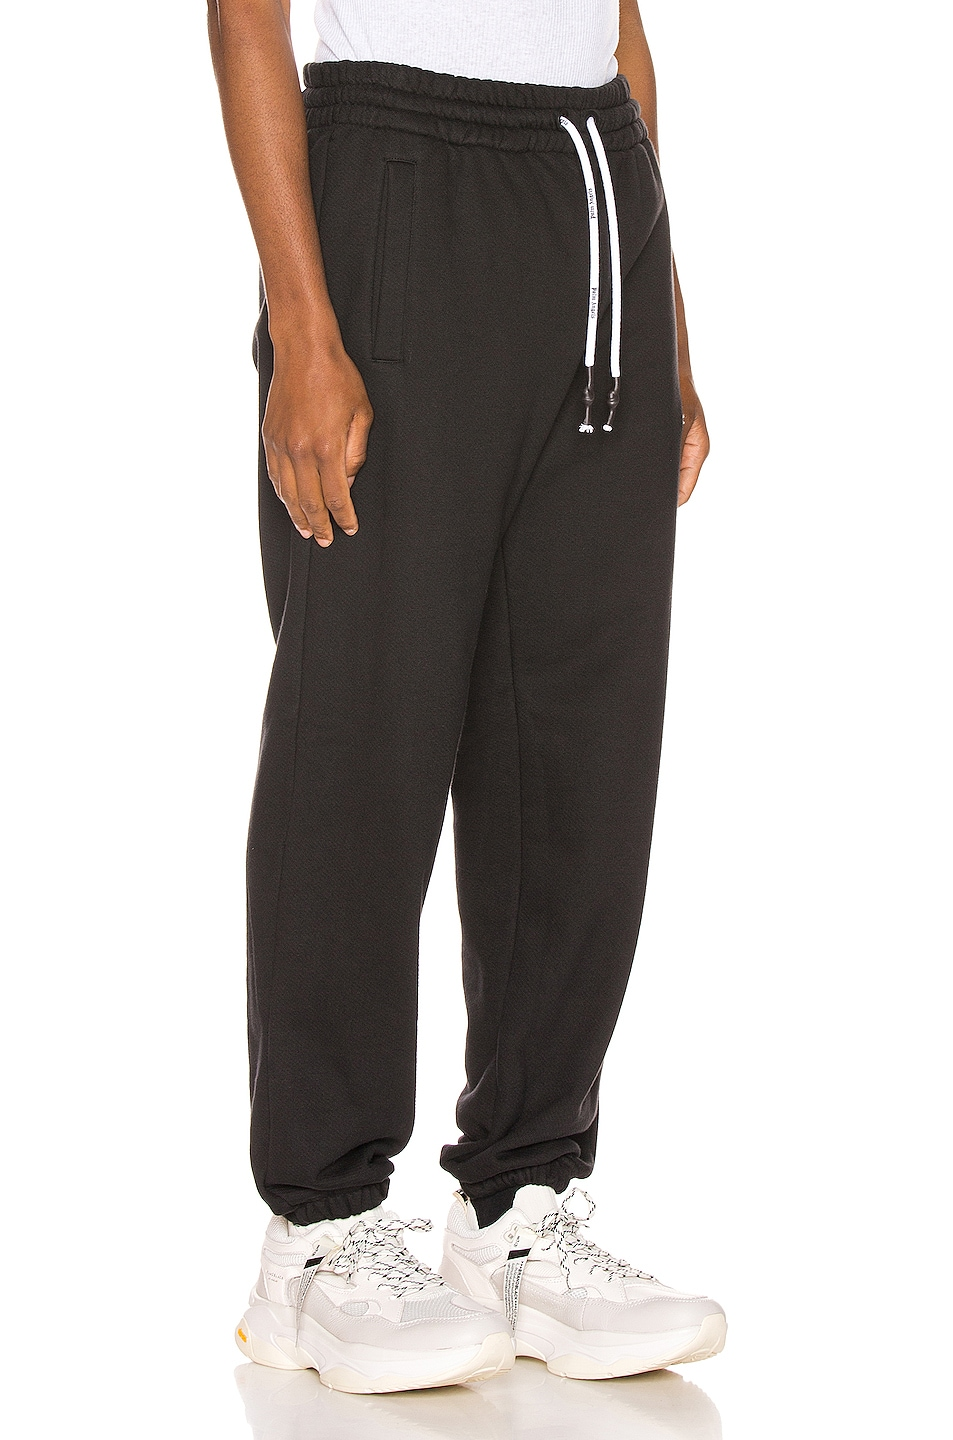 Image 3 of Palm Angels Mini Kill The Bear Sweatpants in Black Brow